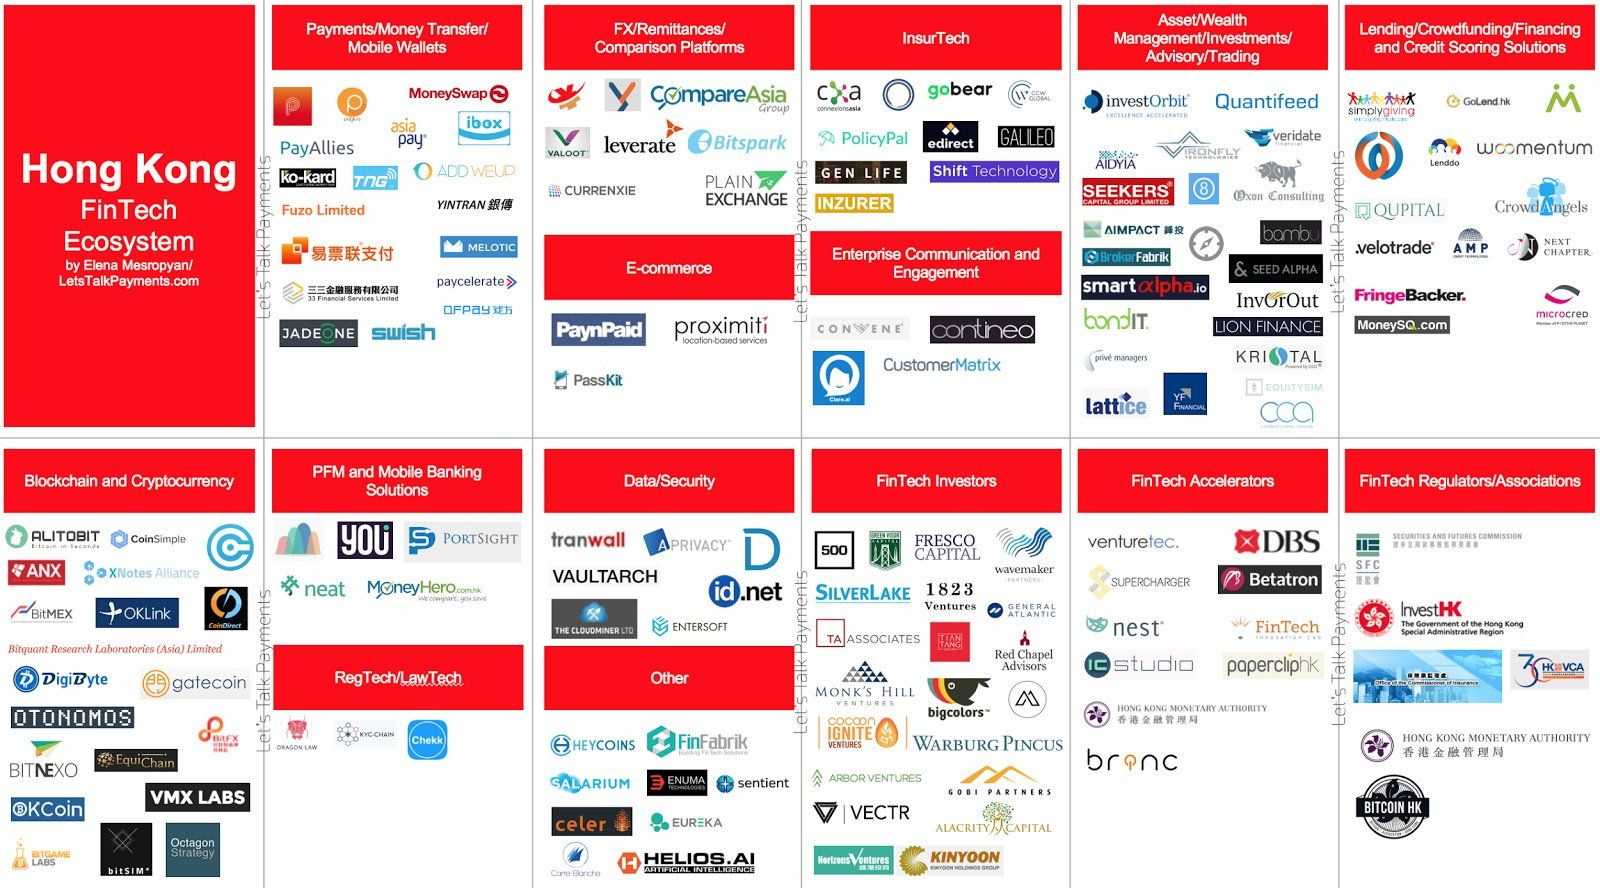 """April Rudin on Twitter: """"Fantastic #HongKong at a glance infographic #FinTech ecosystem by @LetsTalkPaymnts https://t.co/gplYXTnXQs"""""""